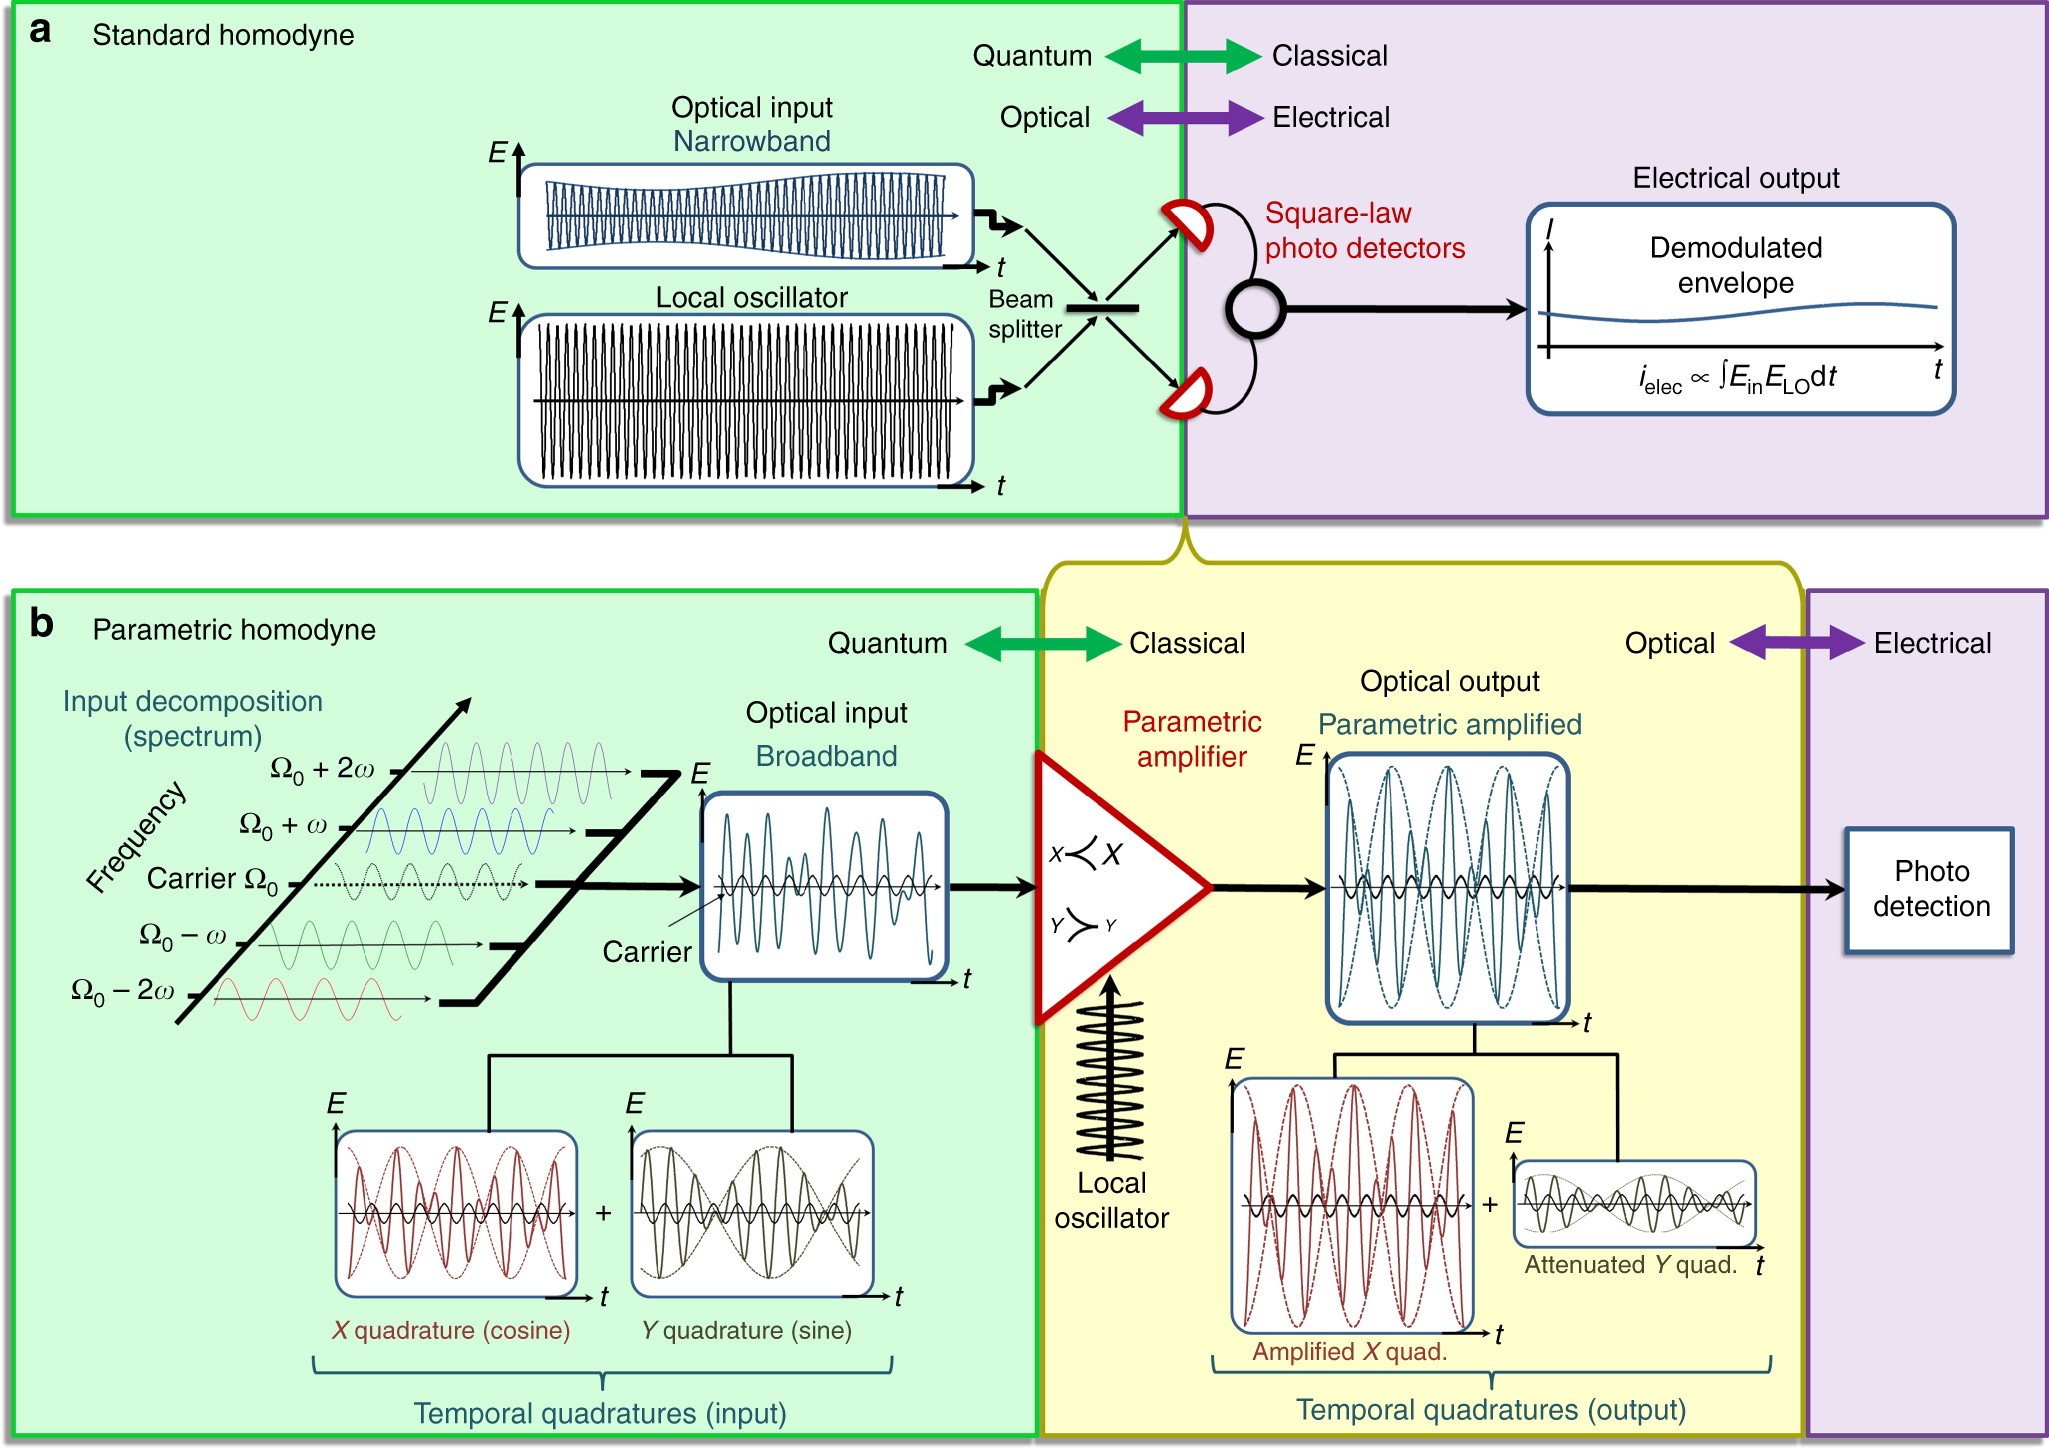 Lifting The Bandwidth Limit Of Optical Homodyne Measurement With Current And Amplification Electronics Electrical Broadband Parametric Nature Communications